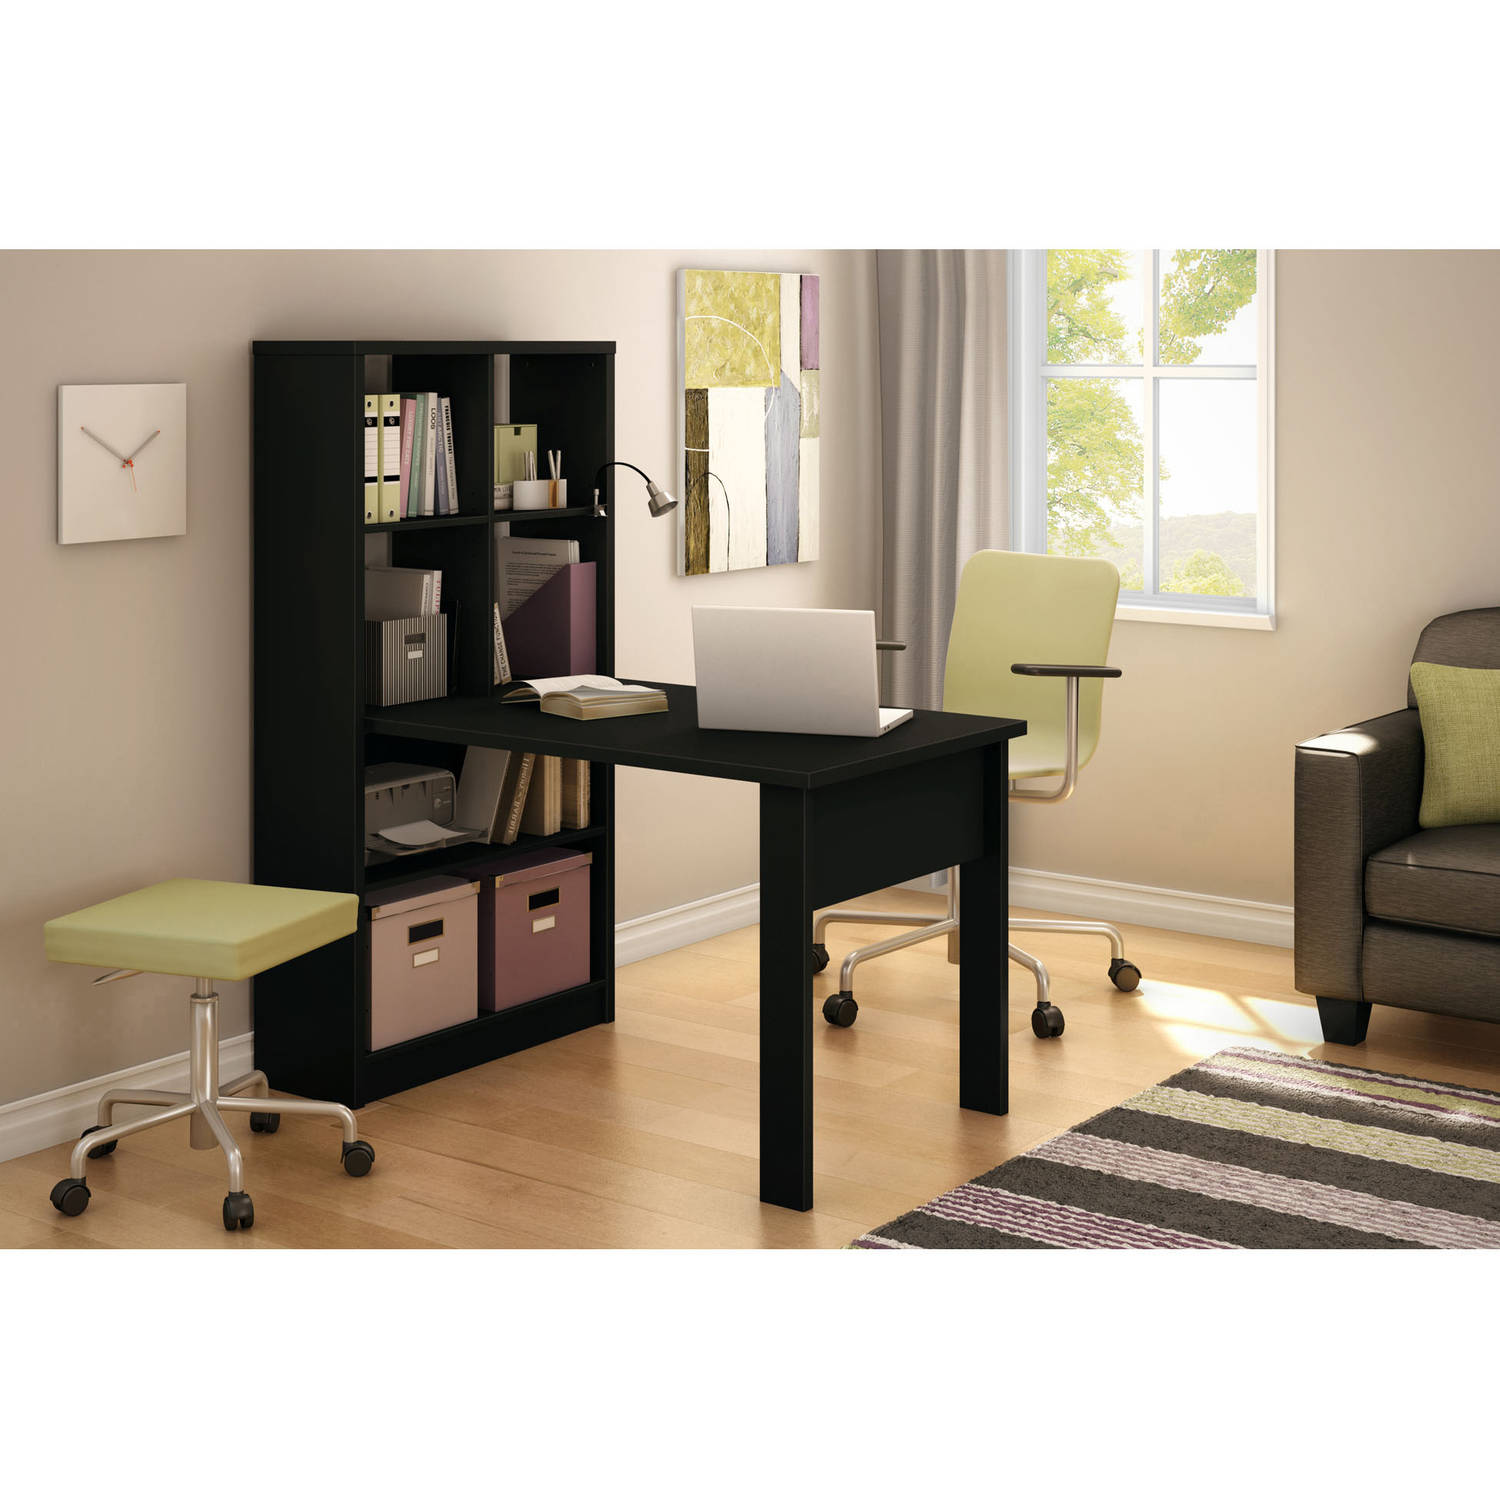 South Shore Annexe Work Table and Storage Unit Combo, Multiple Finishes